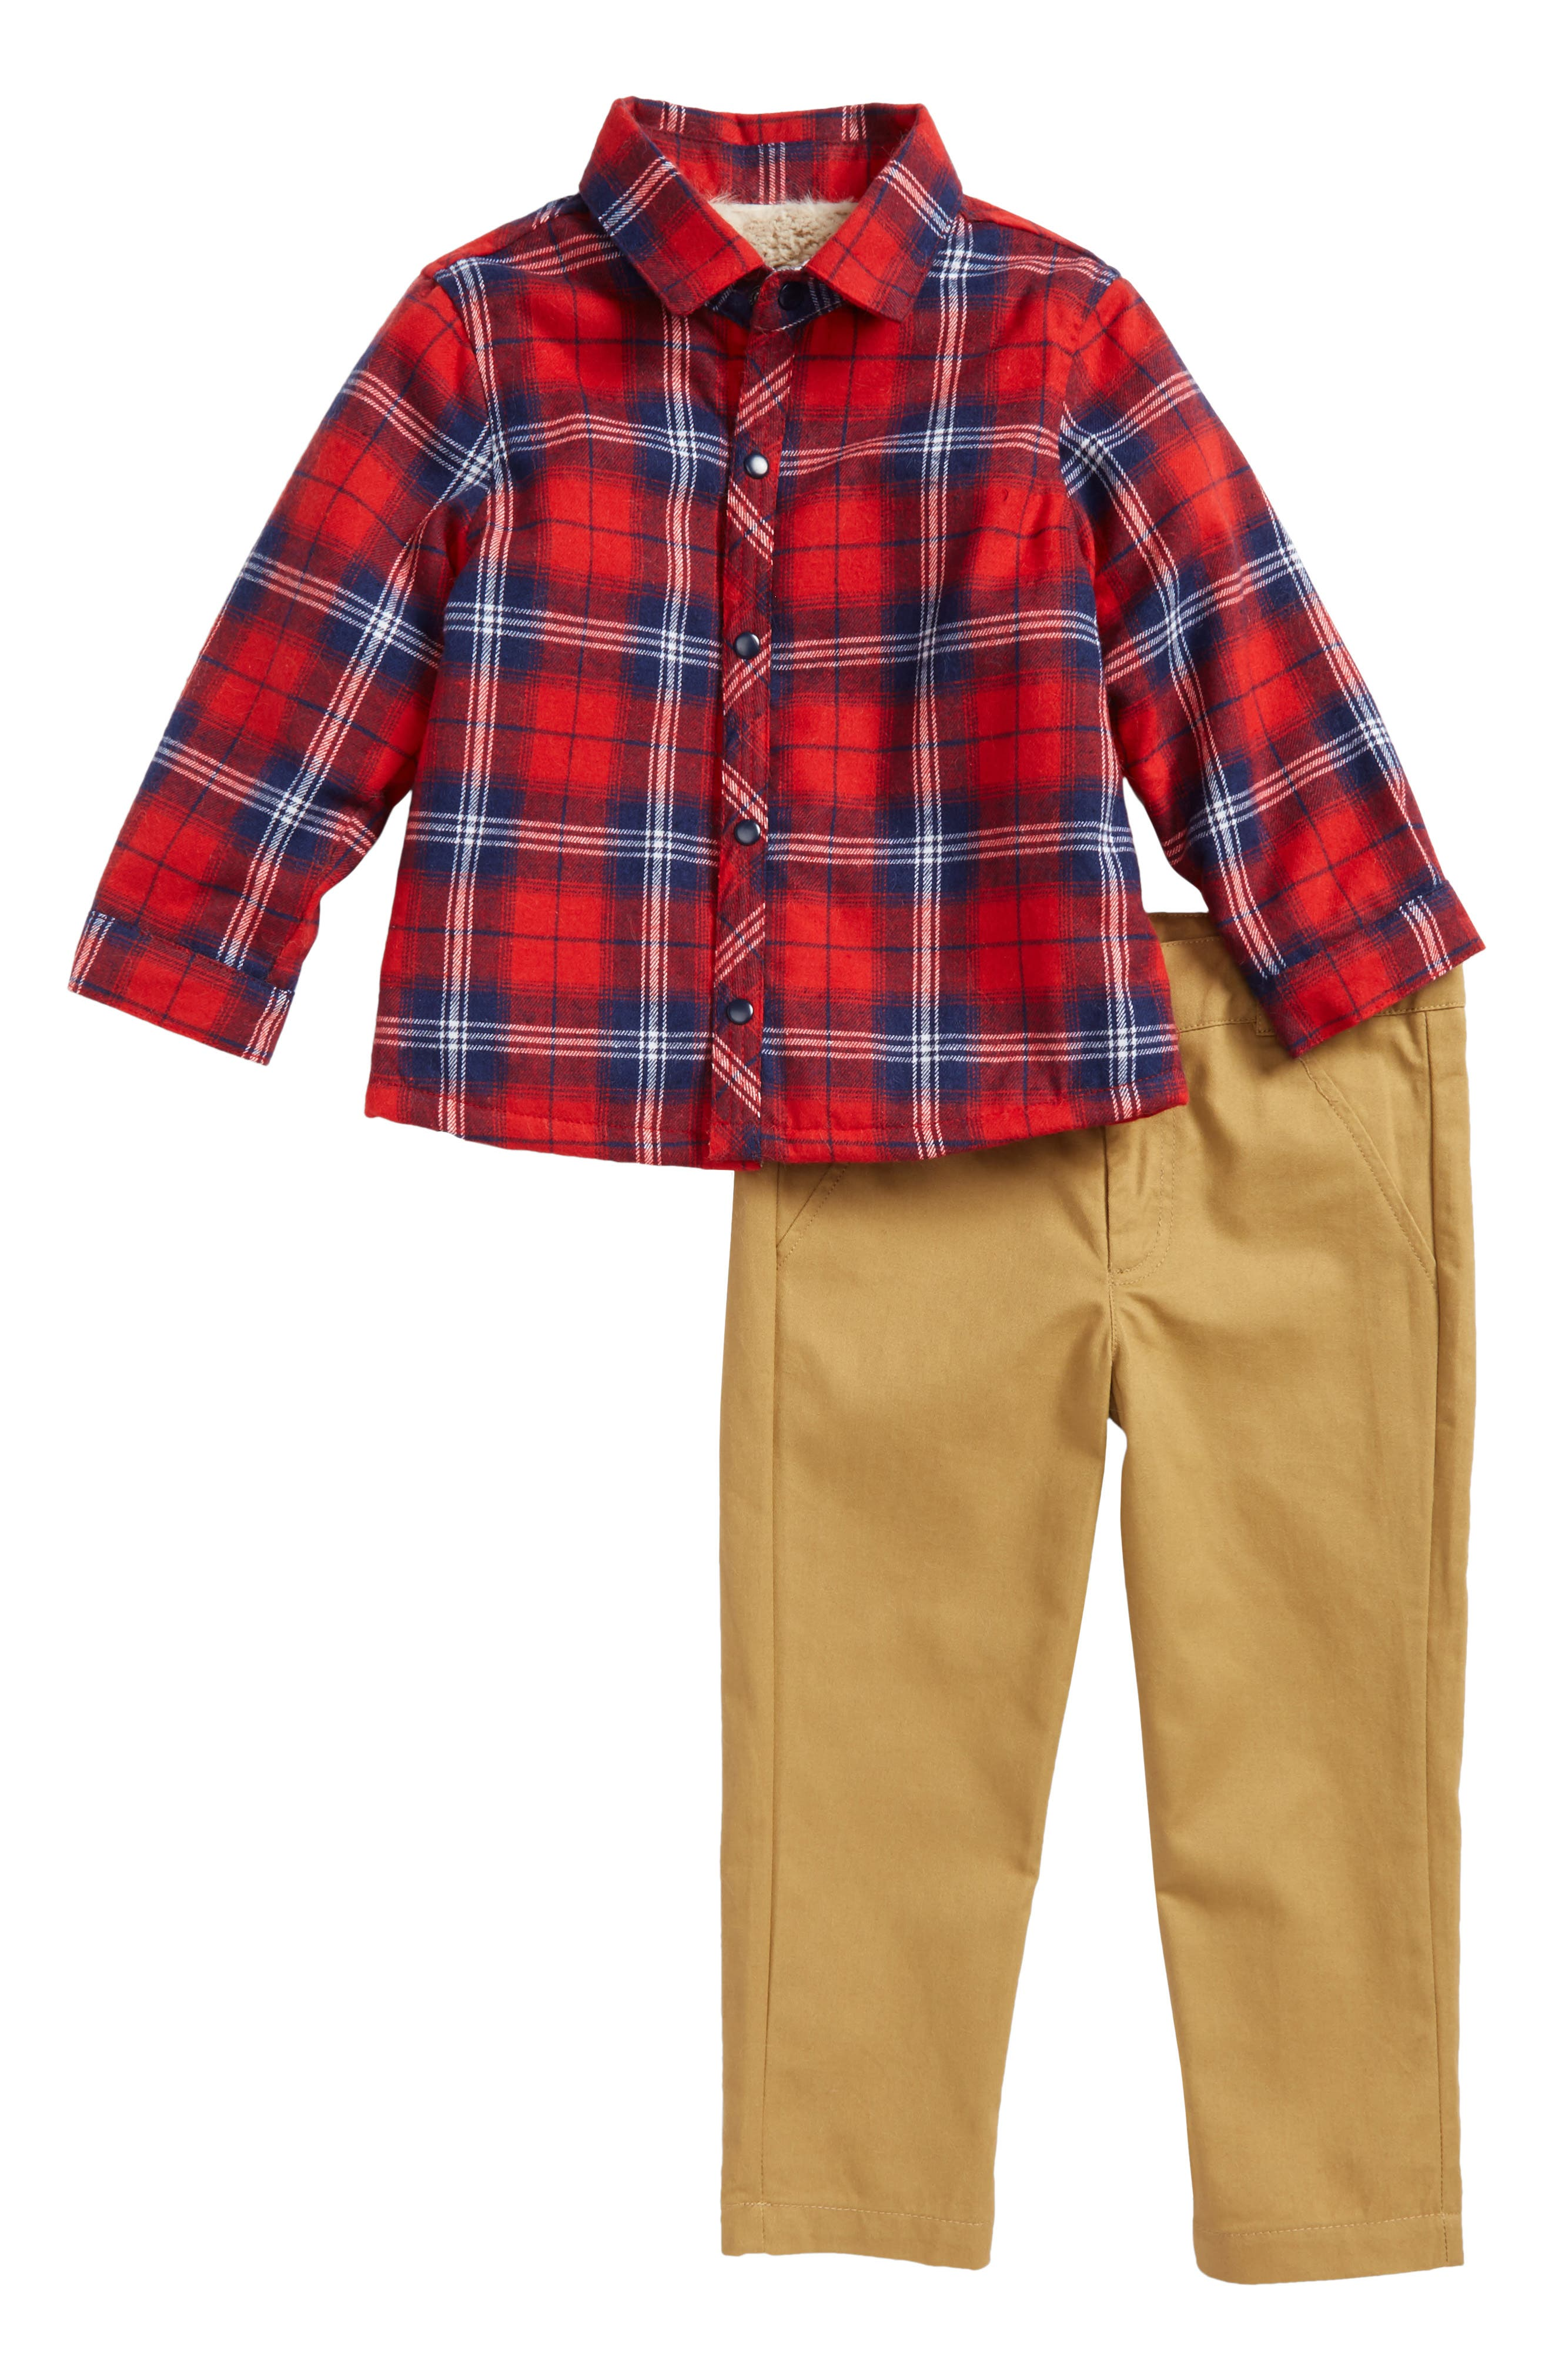 Main Image - Little Brother by Pippa & Julie Plaid Faux Fur Lined Shirt & Pants Set (Baby Boys)